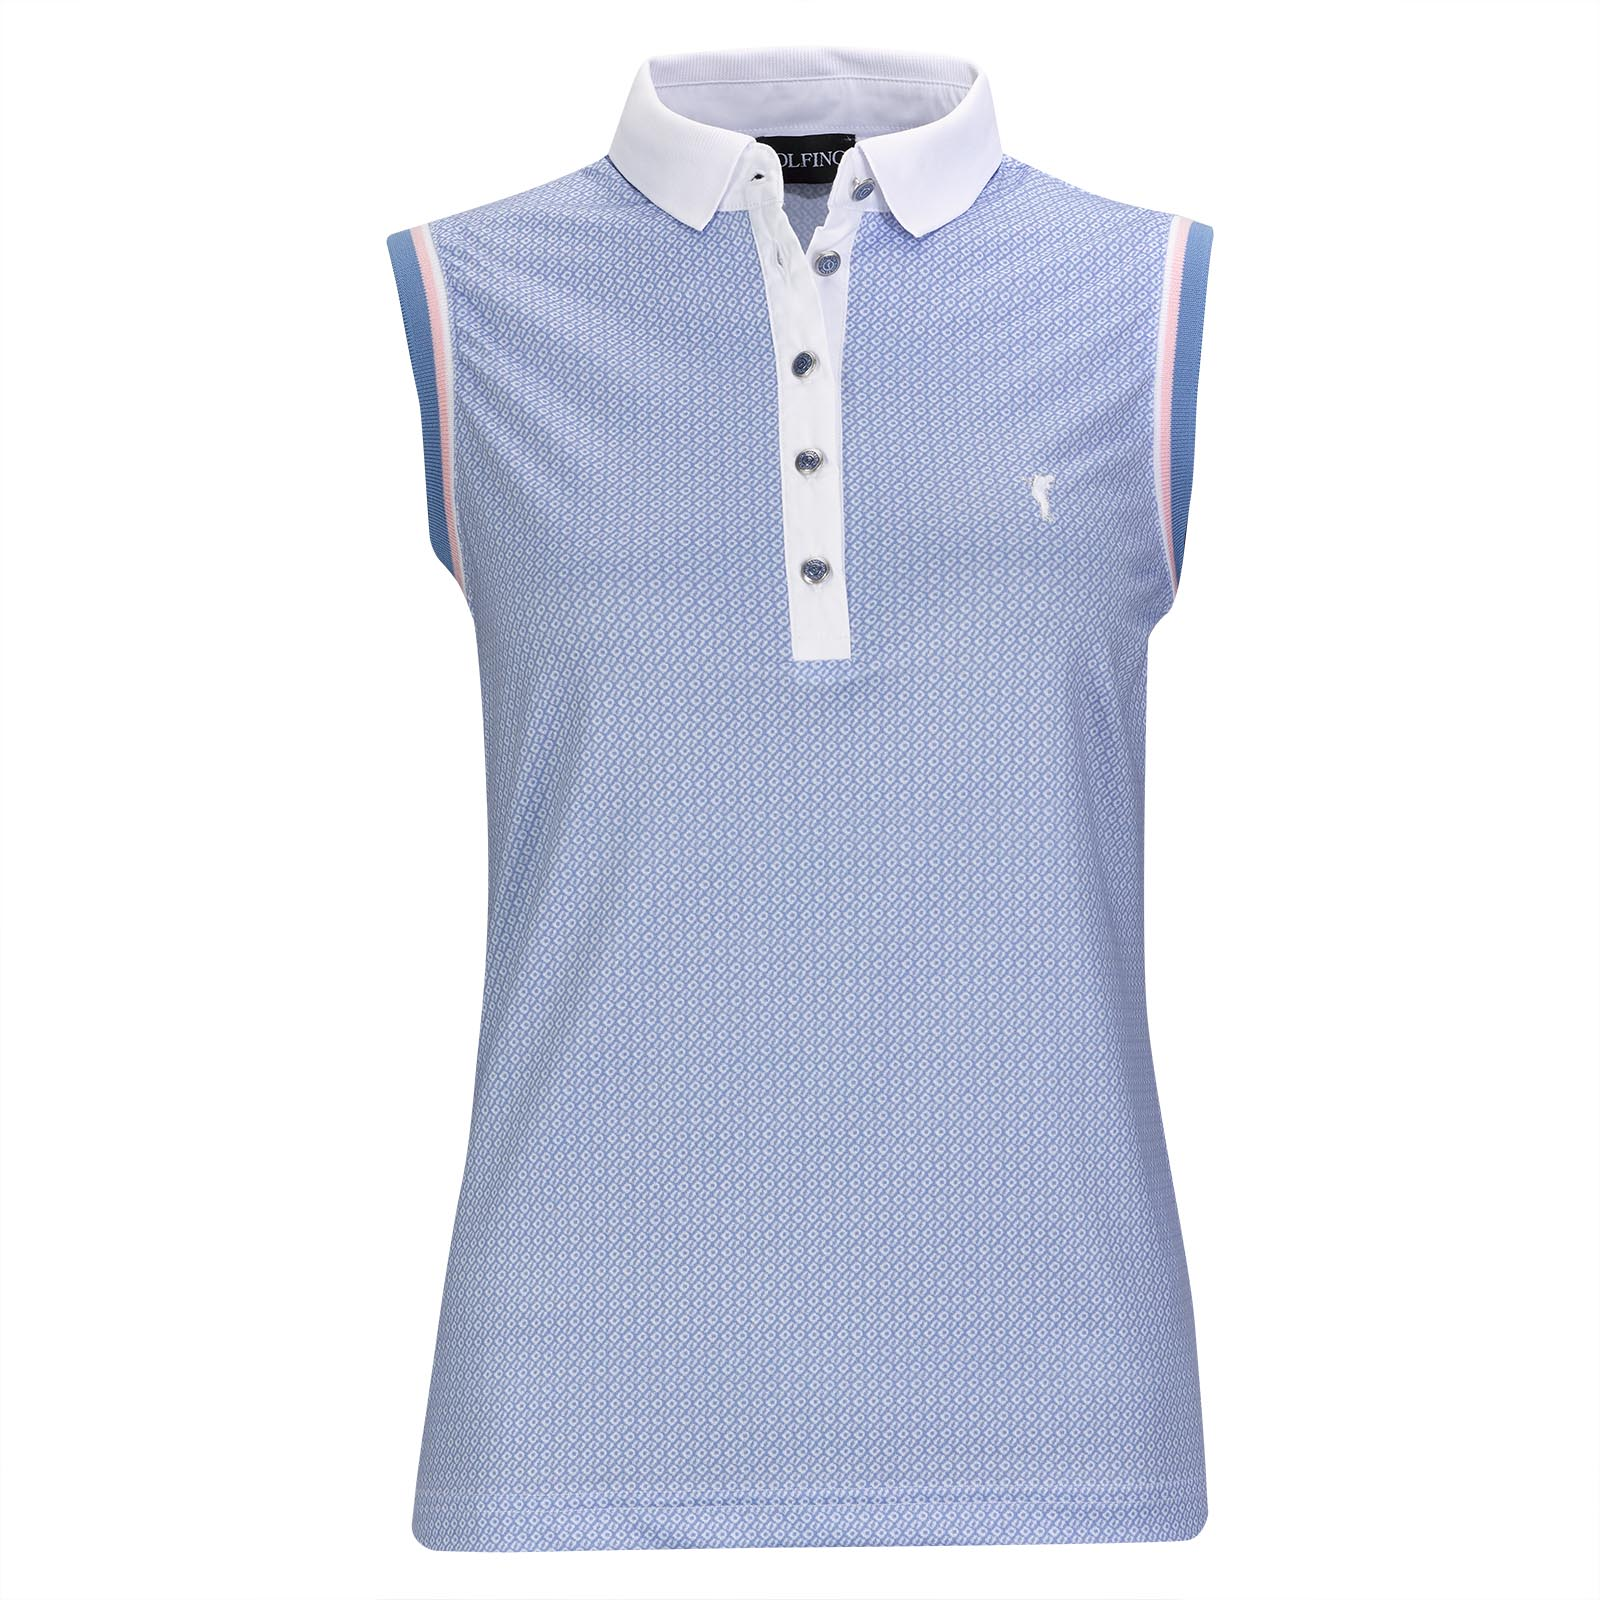 Ärmelloses Damen Funktions-Golfpolo mit Moisture Management in Slim Fit